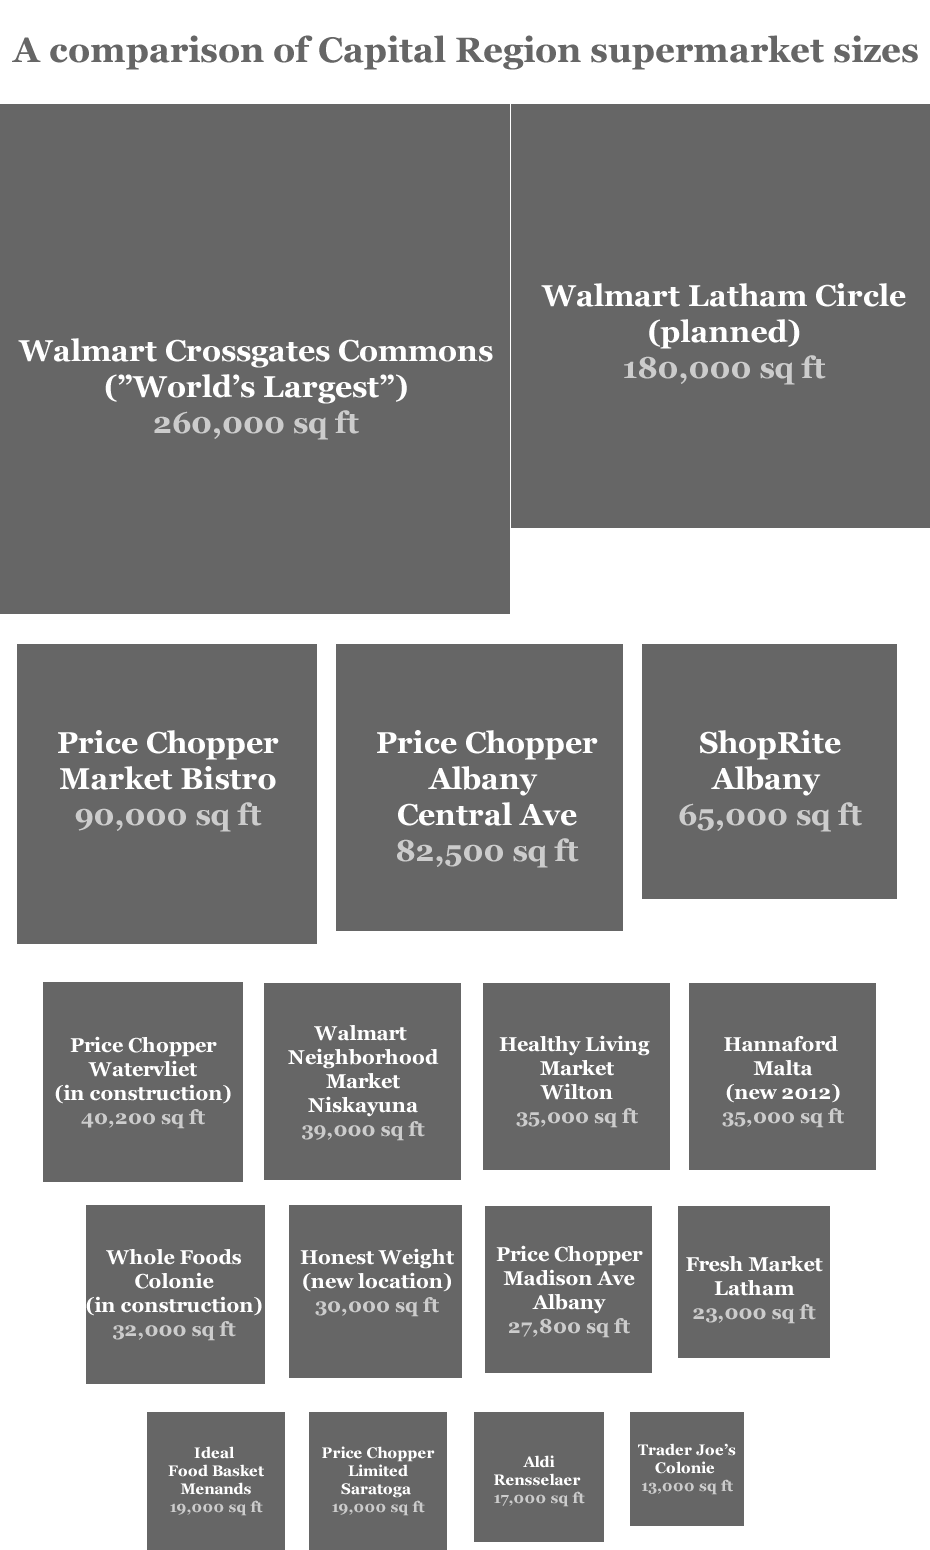 capital region supermarket size comparison